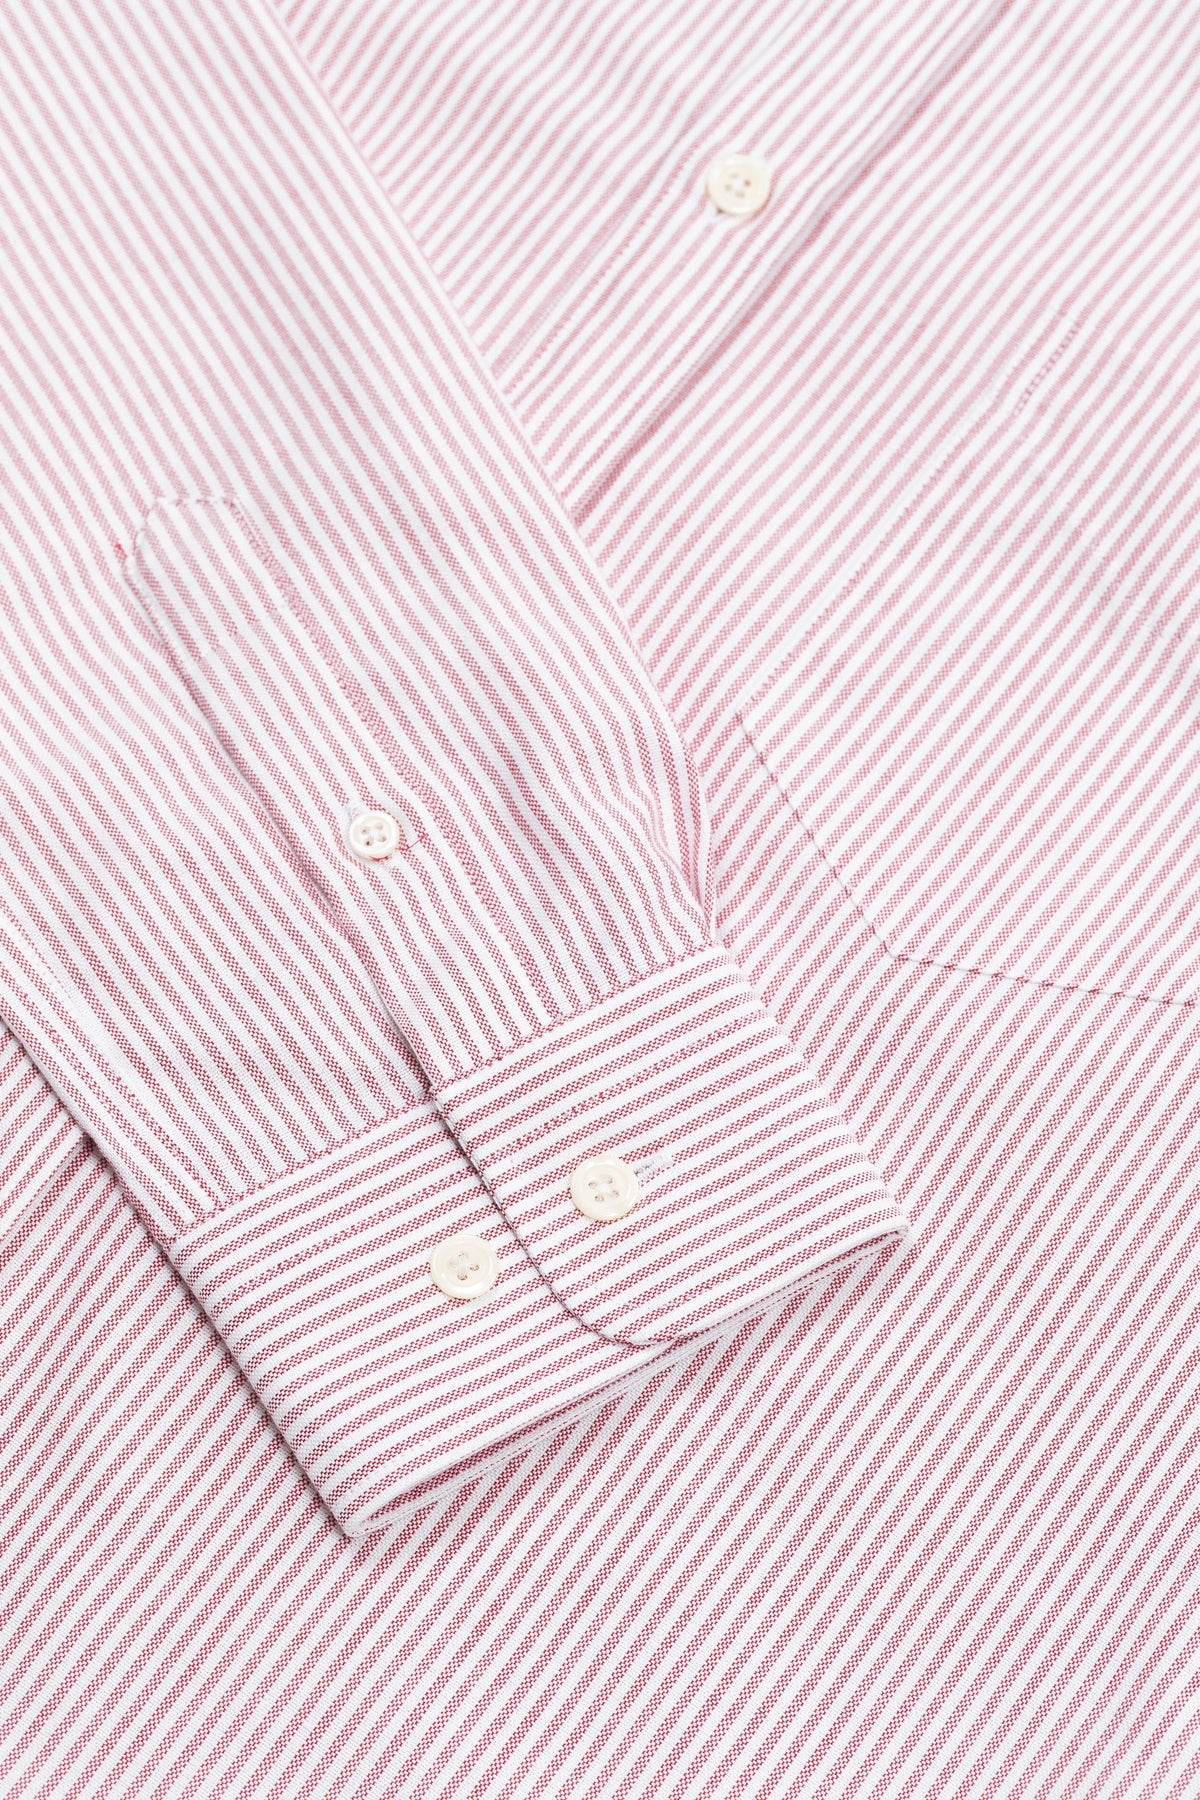 An ivy Skjorte The Red Striped Oxford Shirt